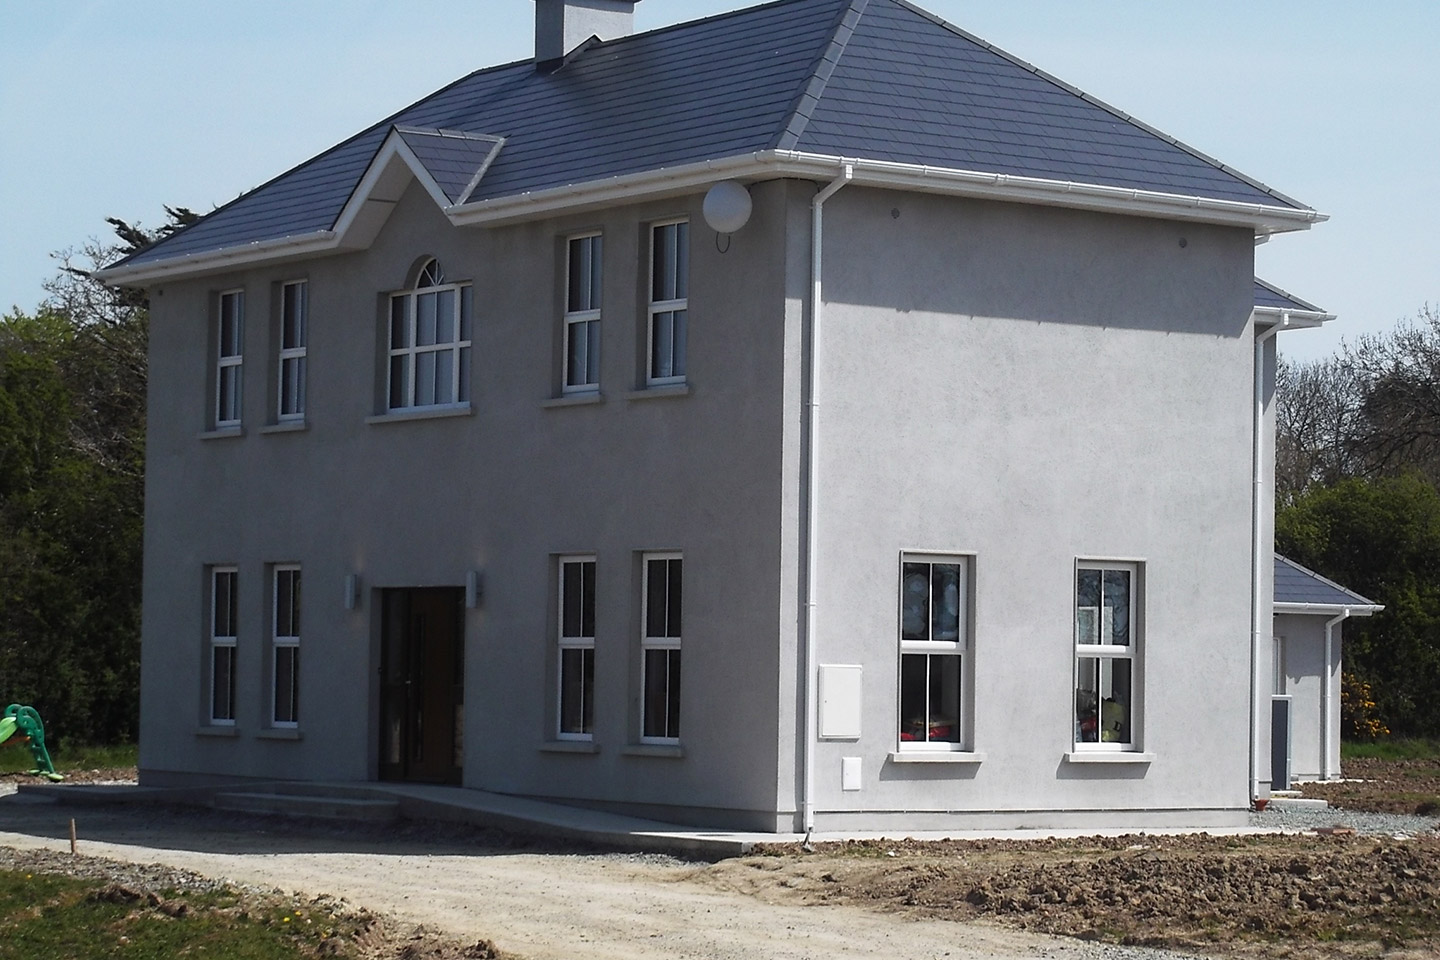 John creed associates civil structural engineers for Structural engineer for houses